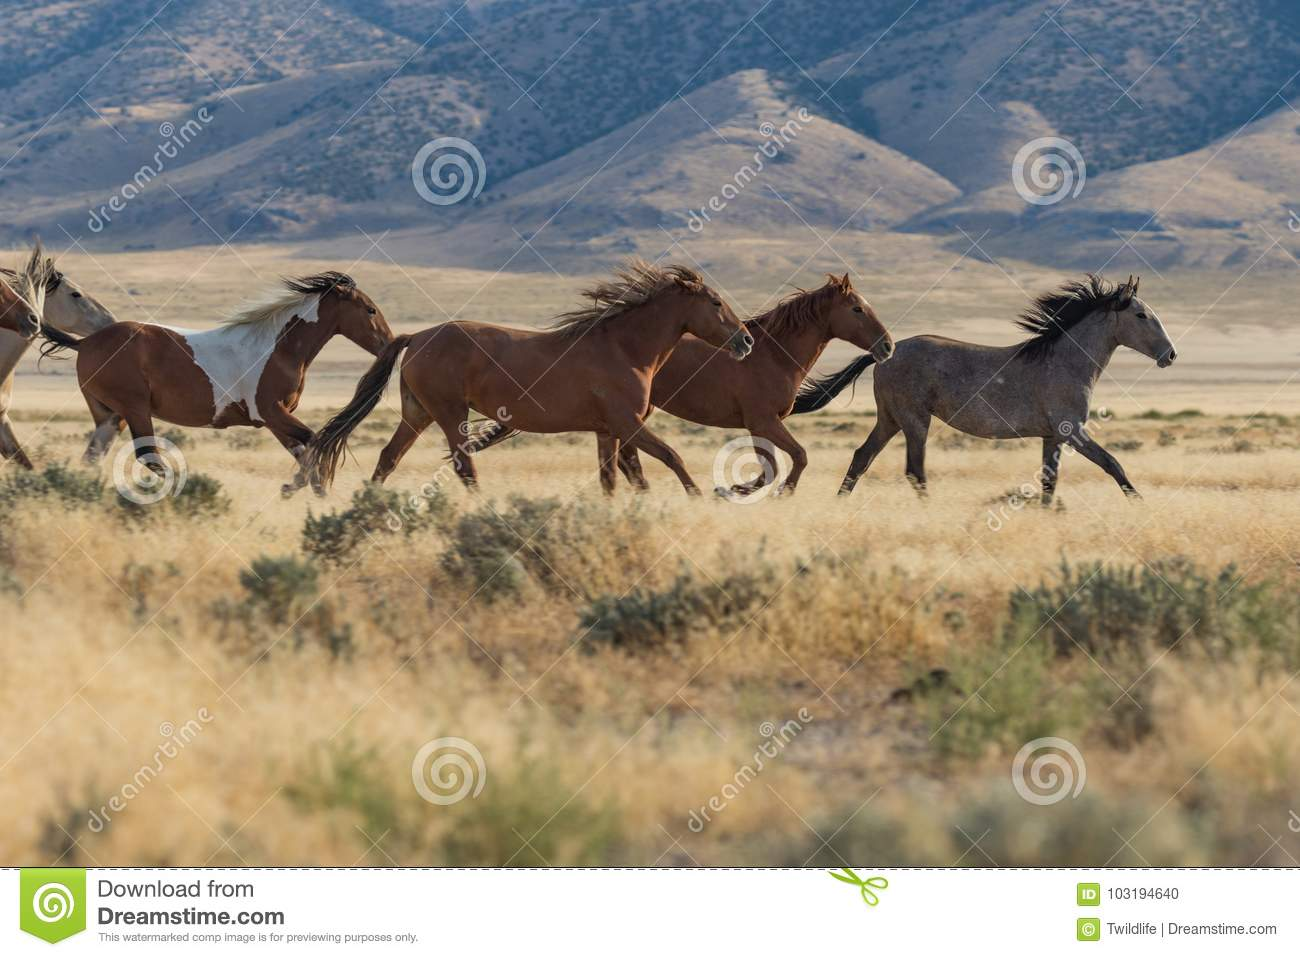 6 799 Wild Horses Running Photos Free Royalty Free Stock Photos From Dreamstime